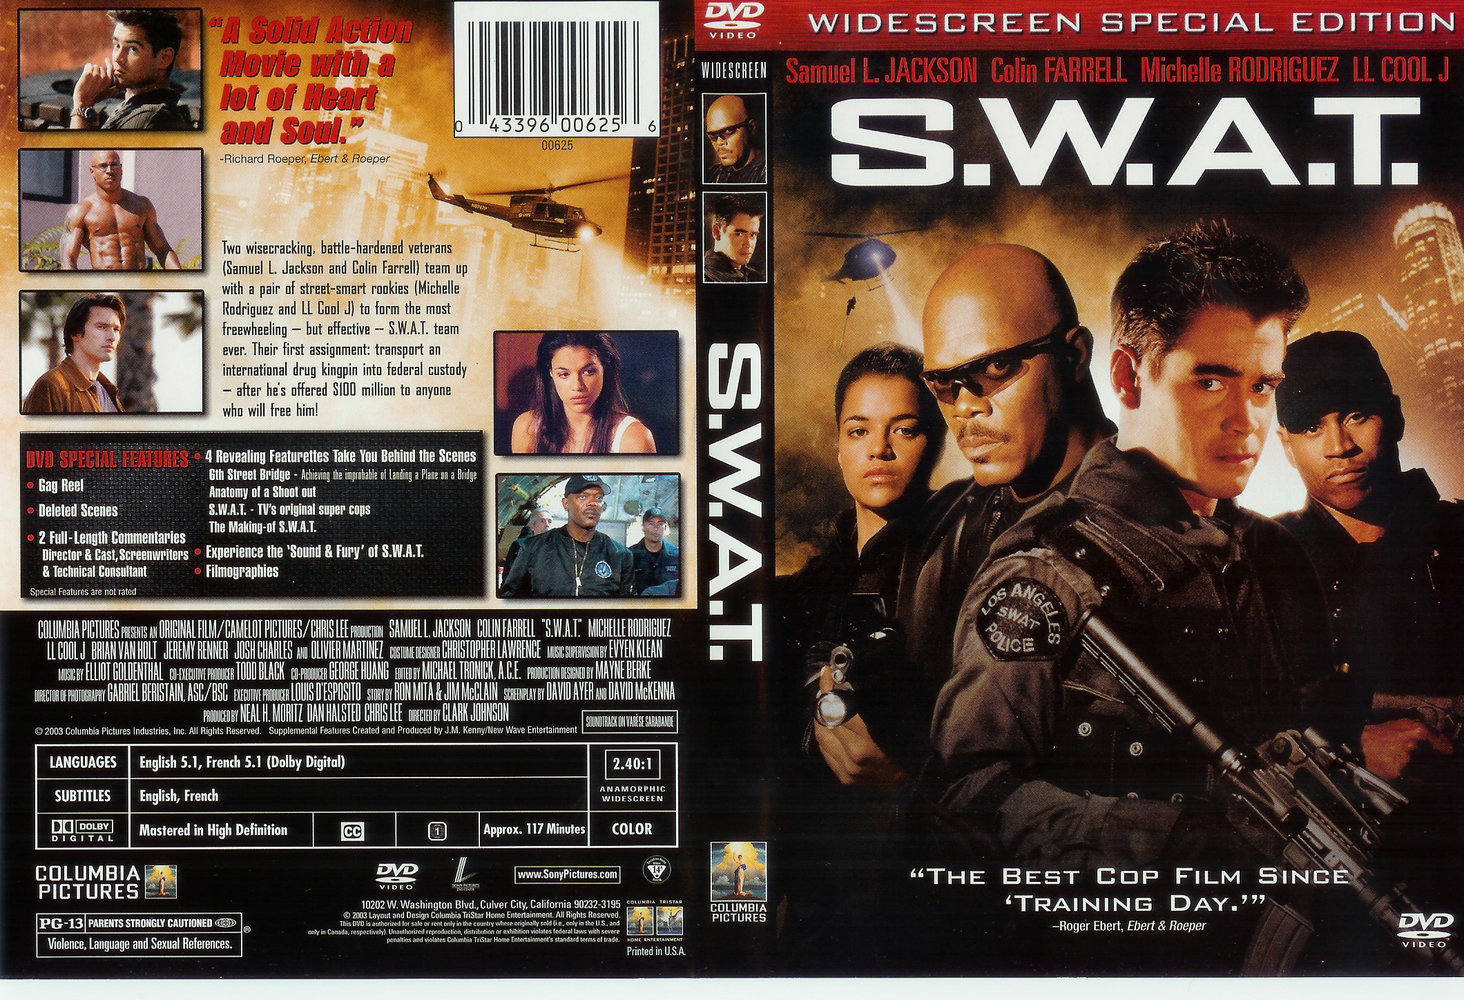 Swat movie theme download